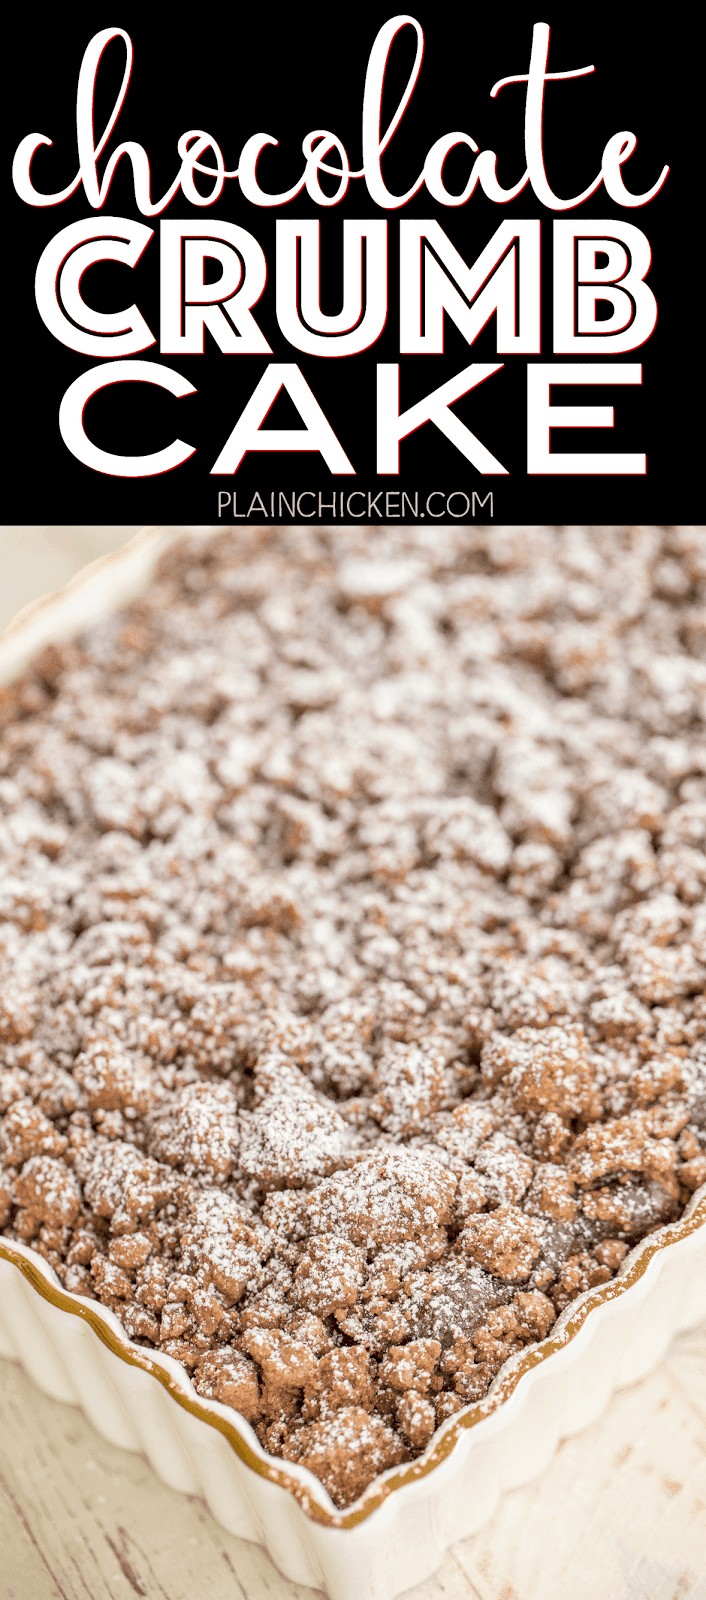 Chocolate crumble cake recipe